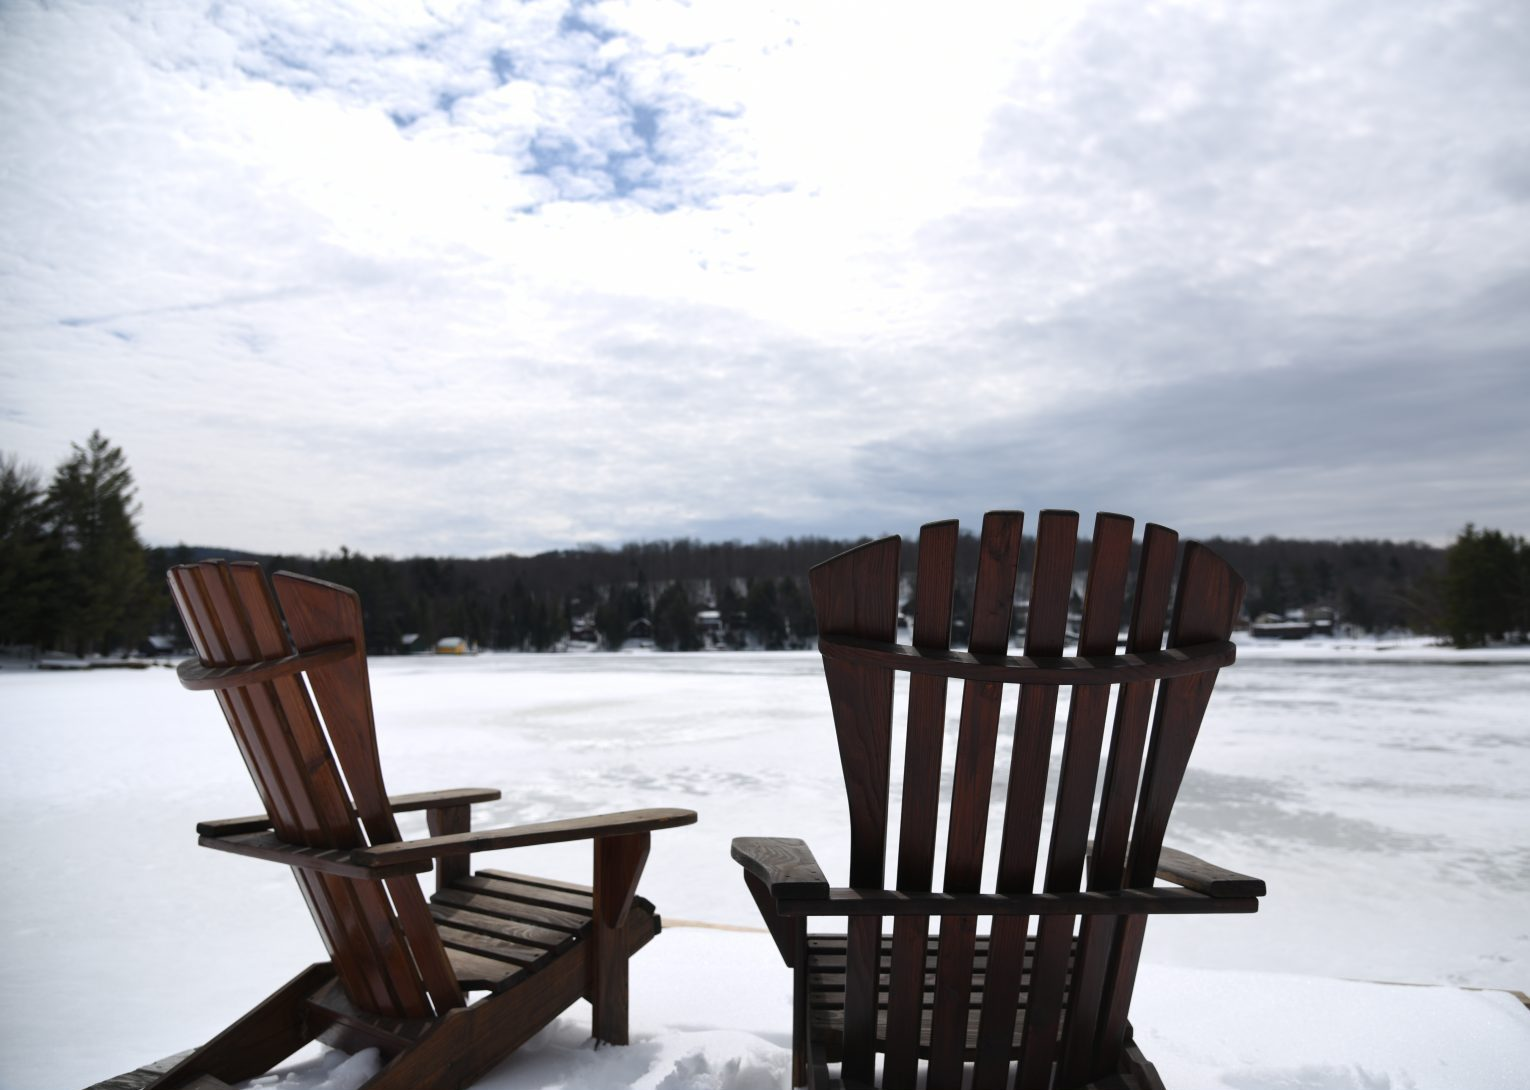 Two Adirondack chairs facing the frozen lake